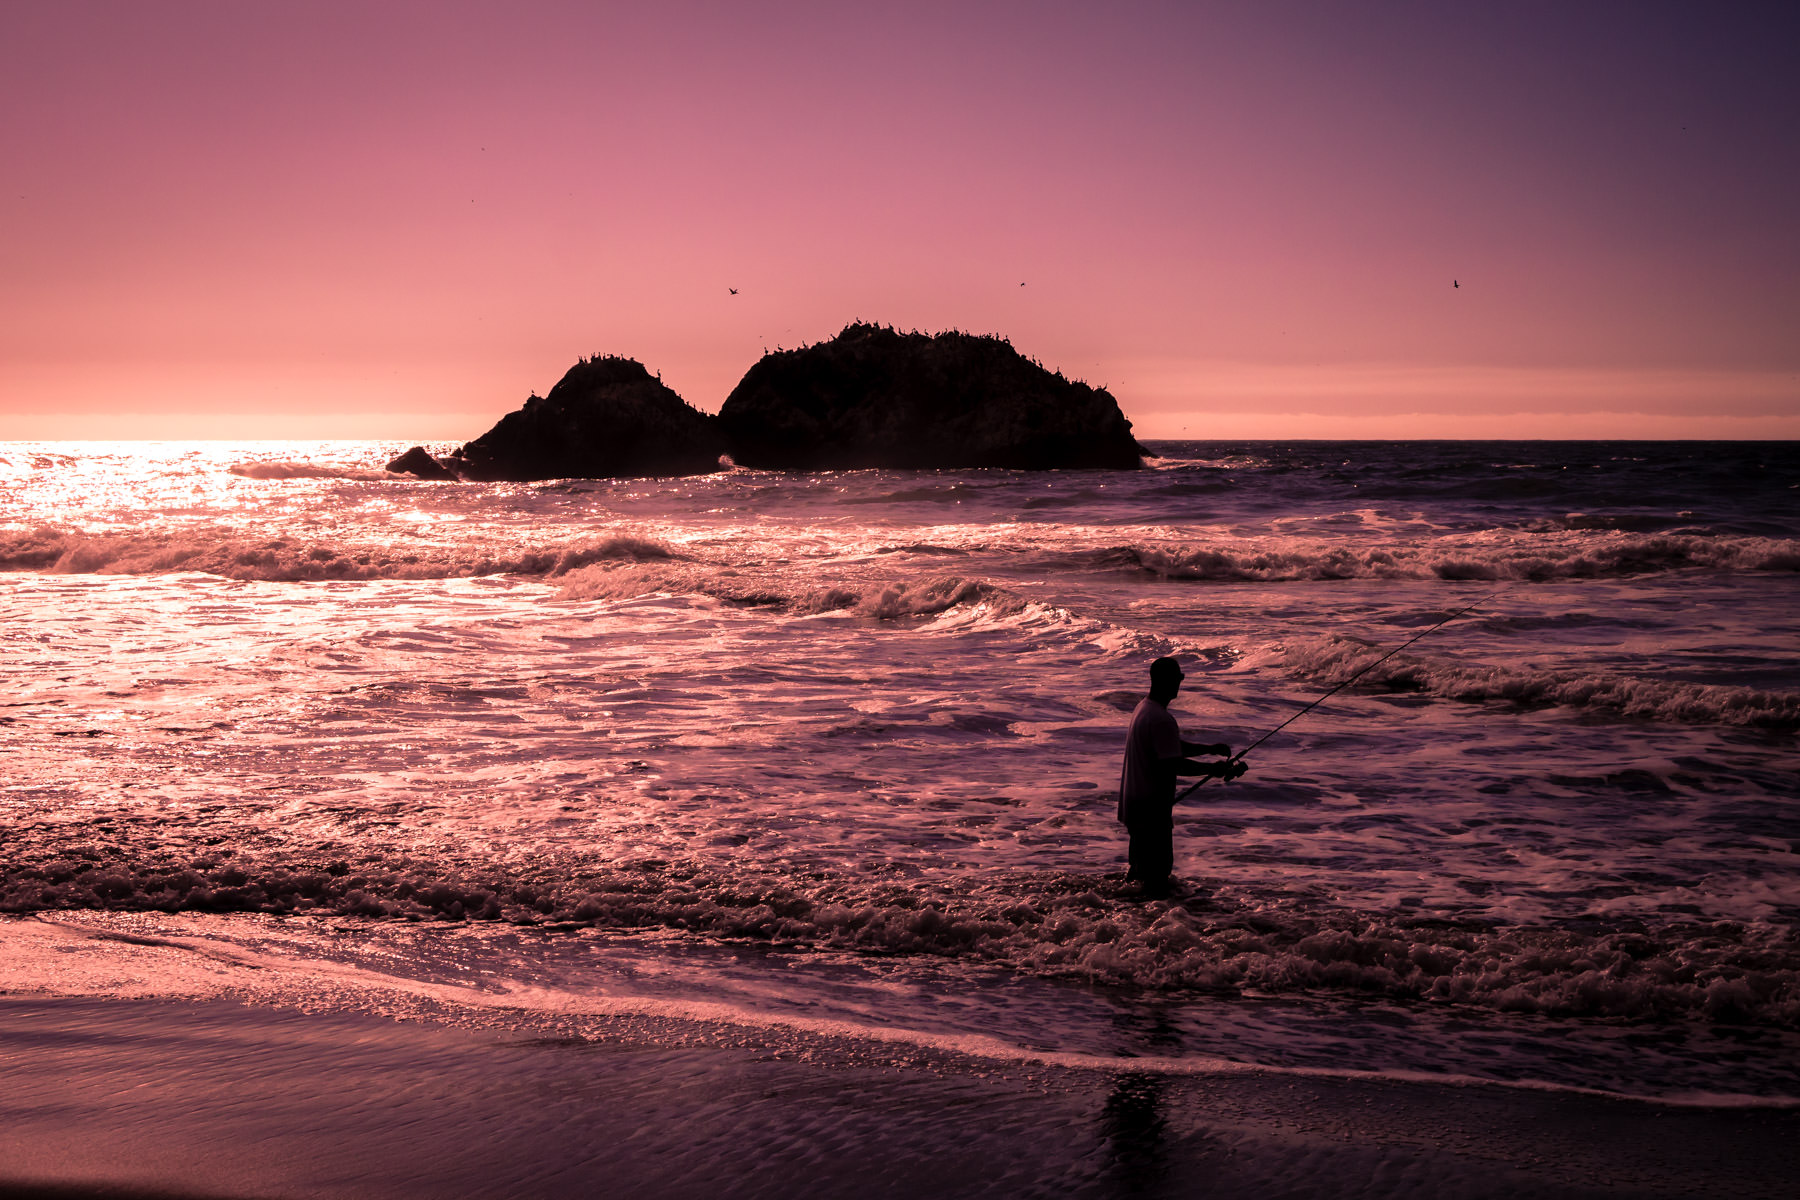 A fisherman tries his luck as the sun sets on the Pacific Ocean at San Francisco's Lands End.